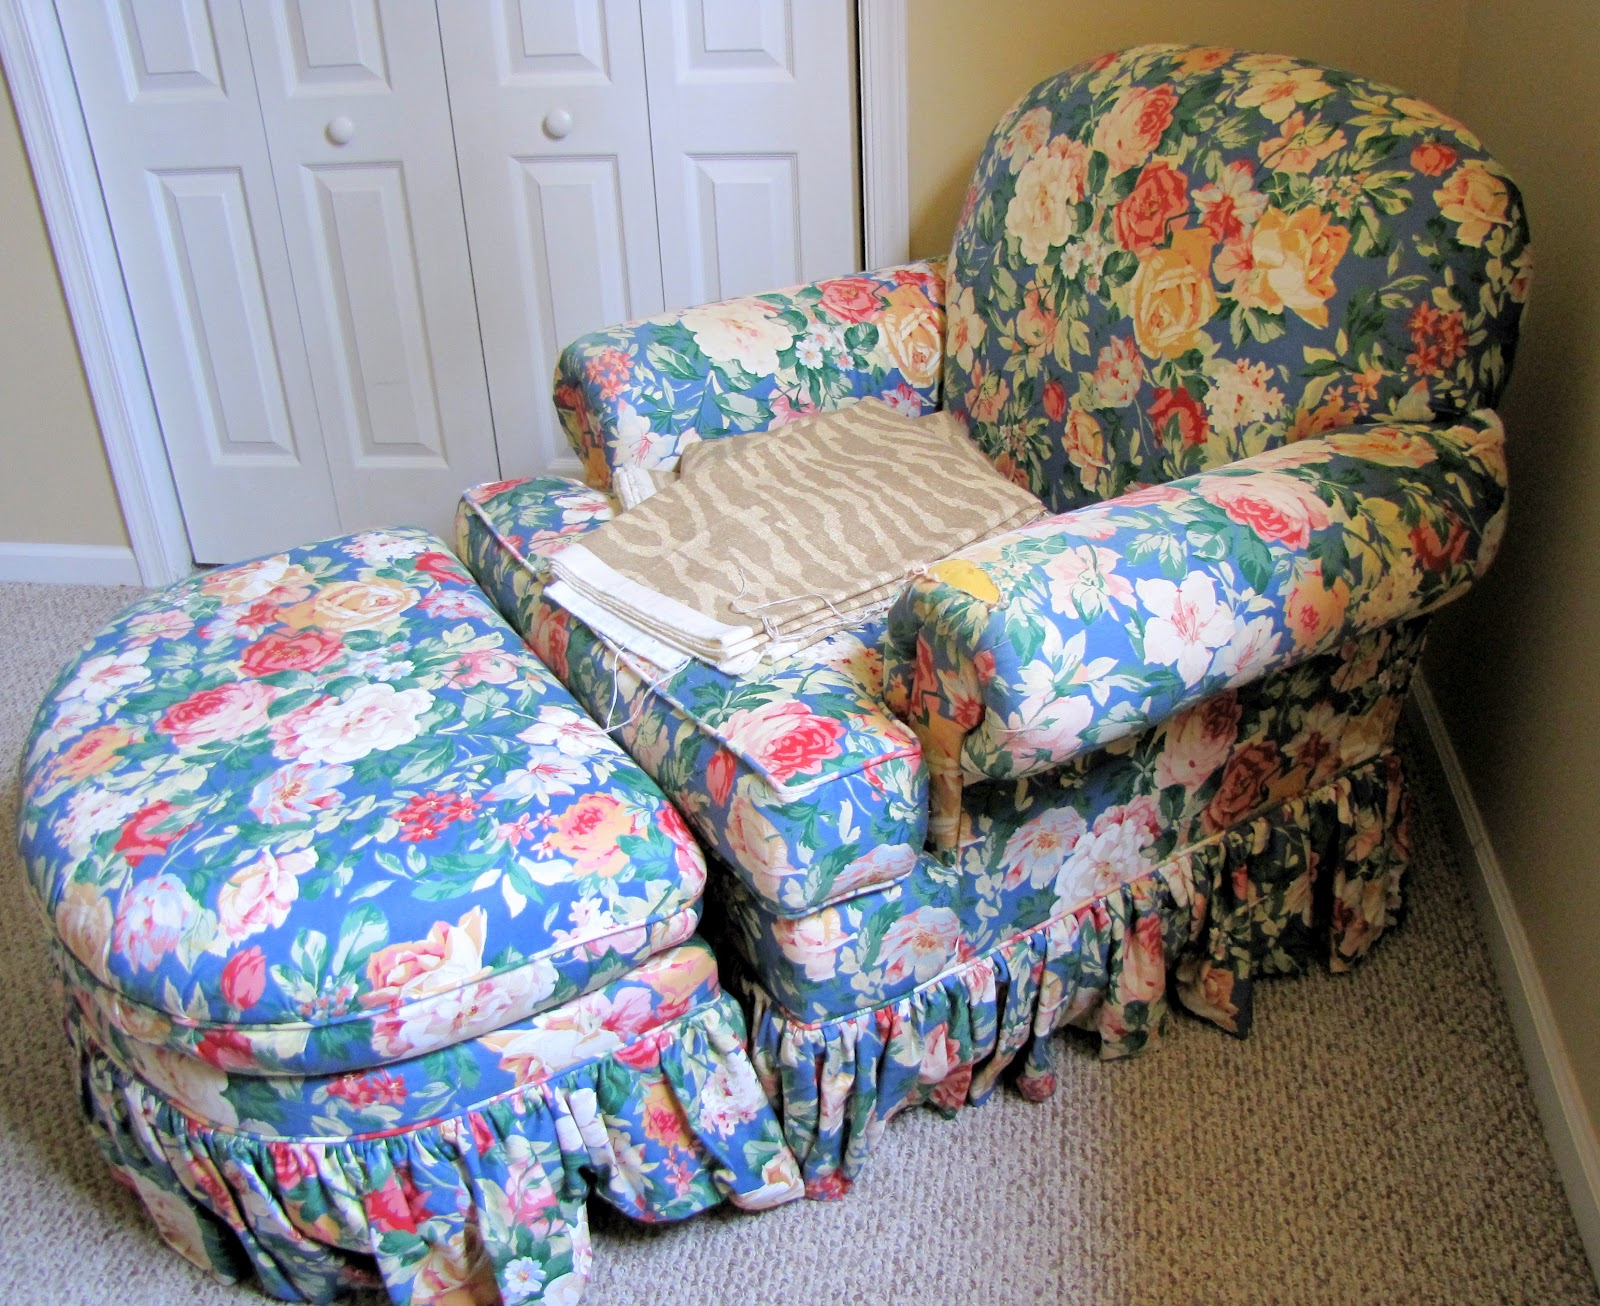 Slipcover For Oversized Chair And Ottoman Goodbye House Hello Home Blog Armchair And Ottoman